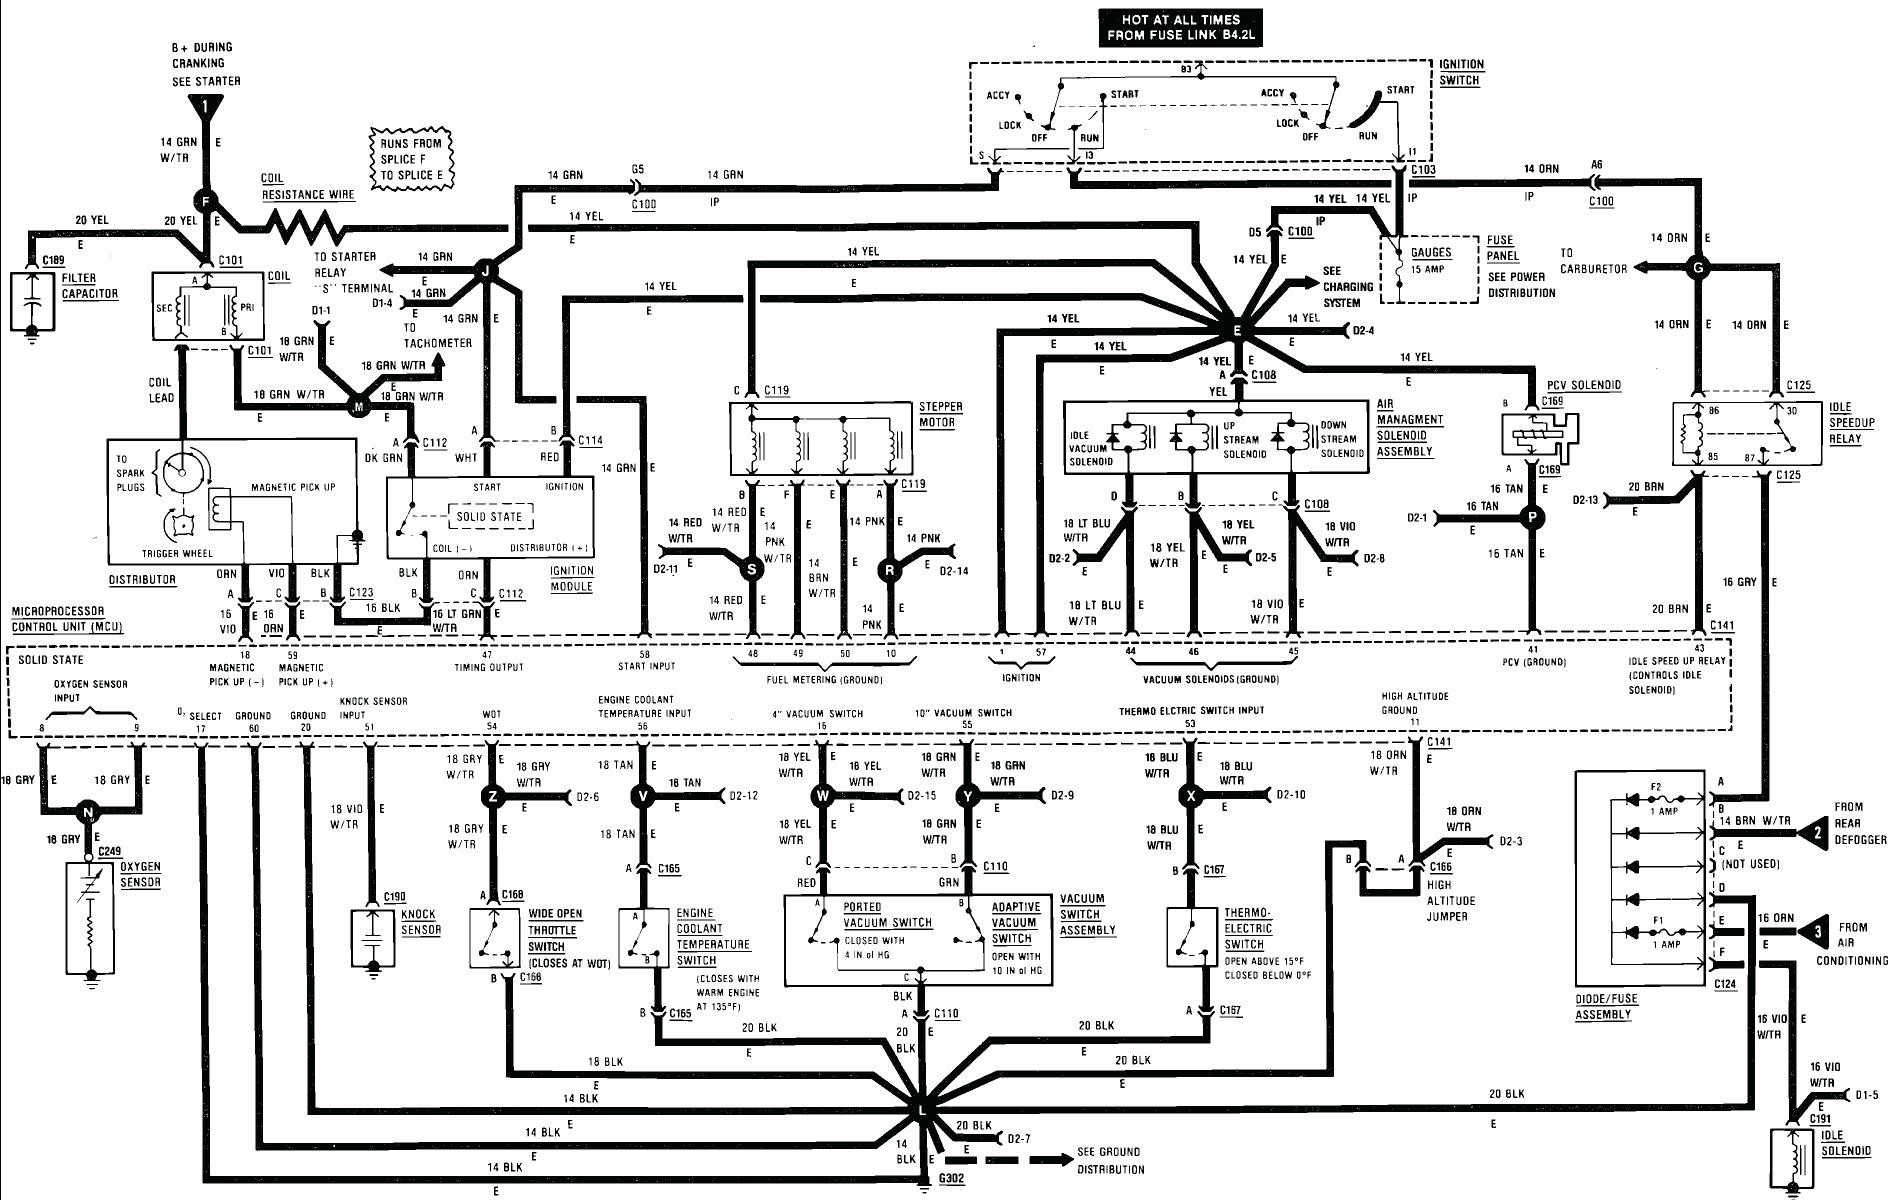 2005 Jeep Wrangler Automatic Transmission Diagram Wiring Wiring Diagram Trite Explore Trite Explore Lasuiteclub It